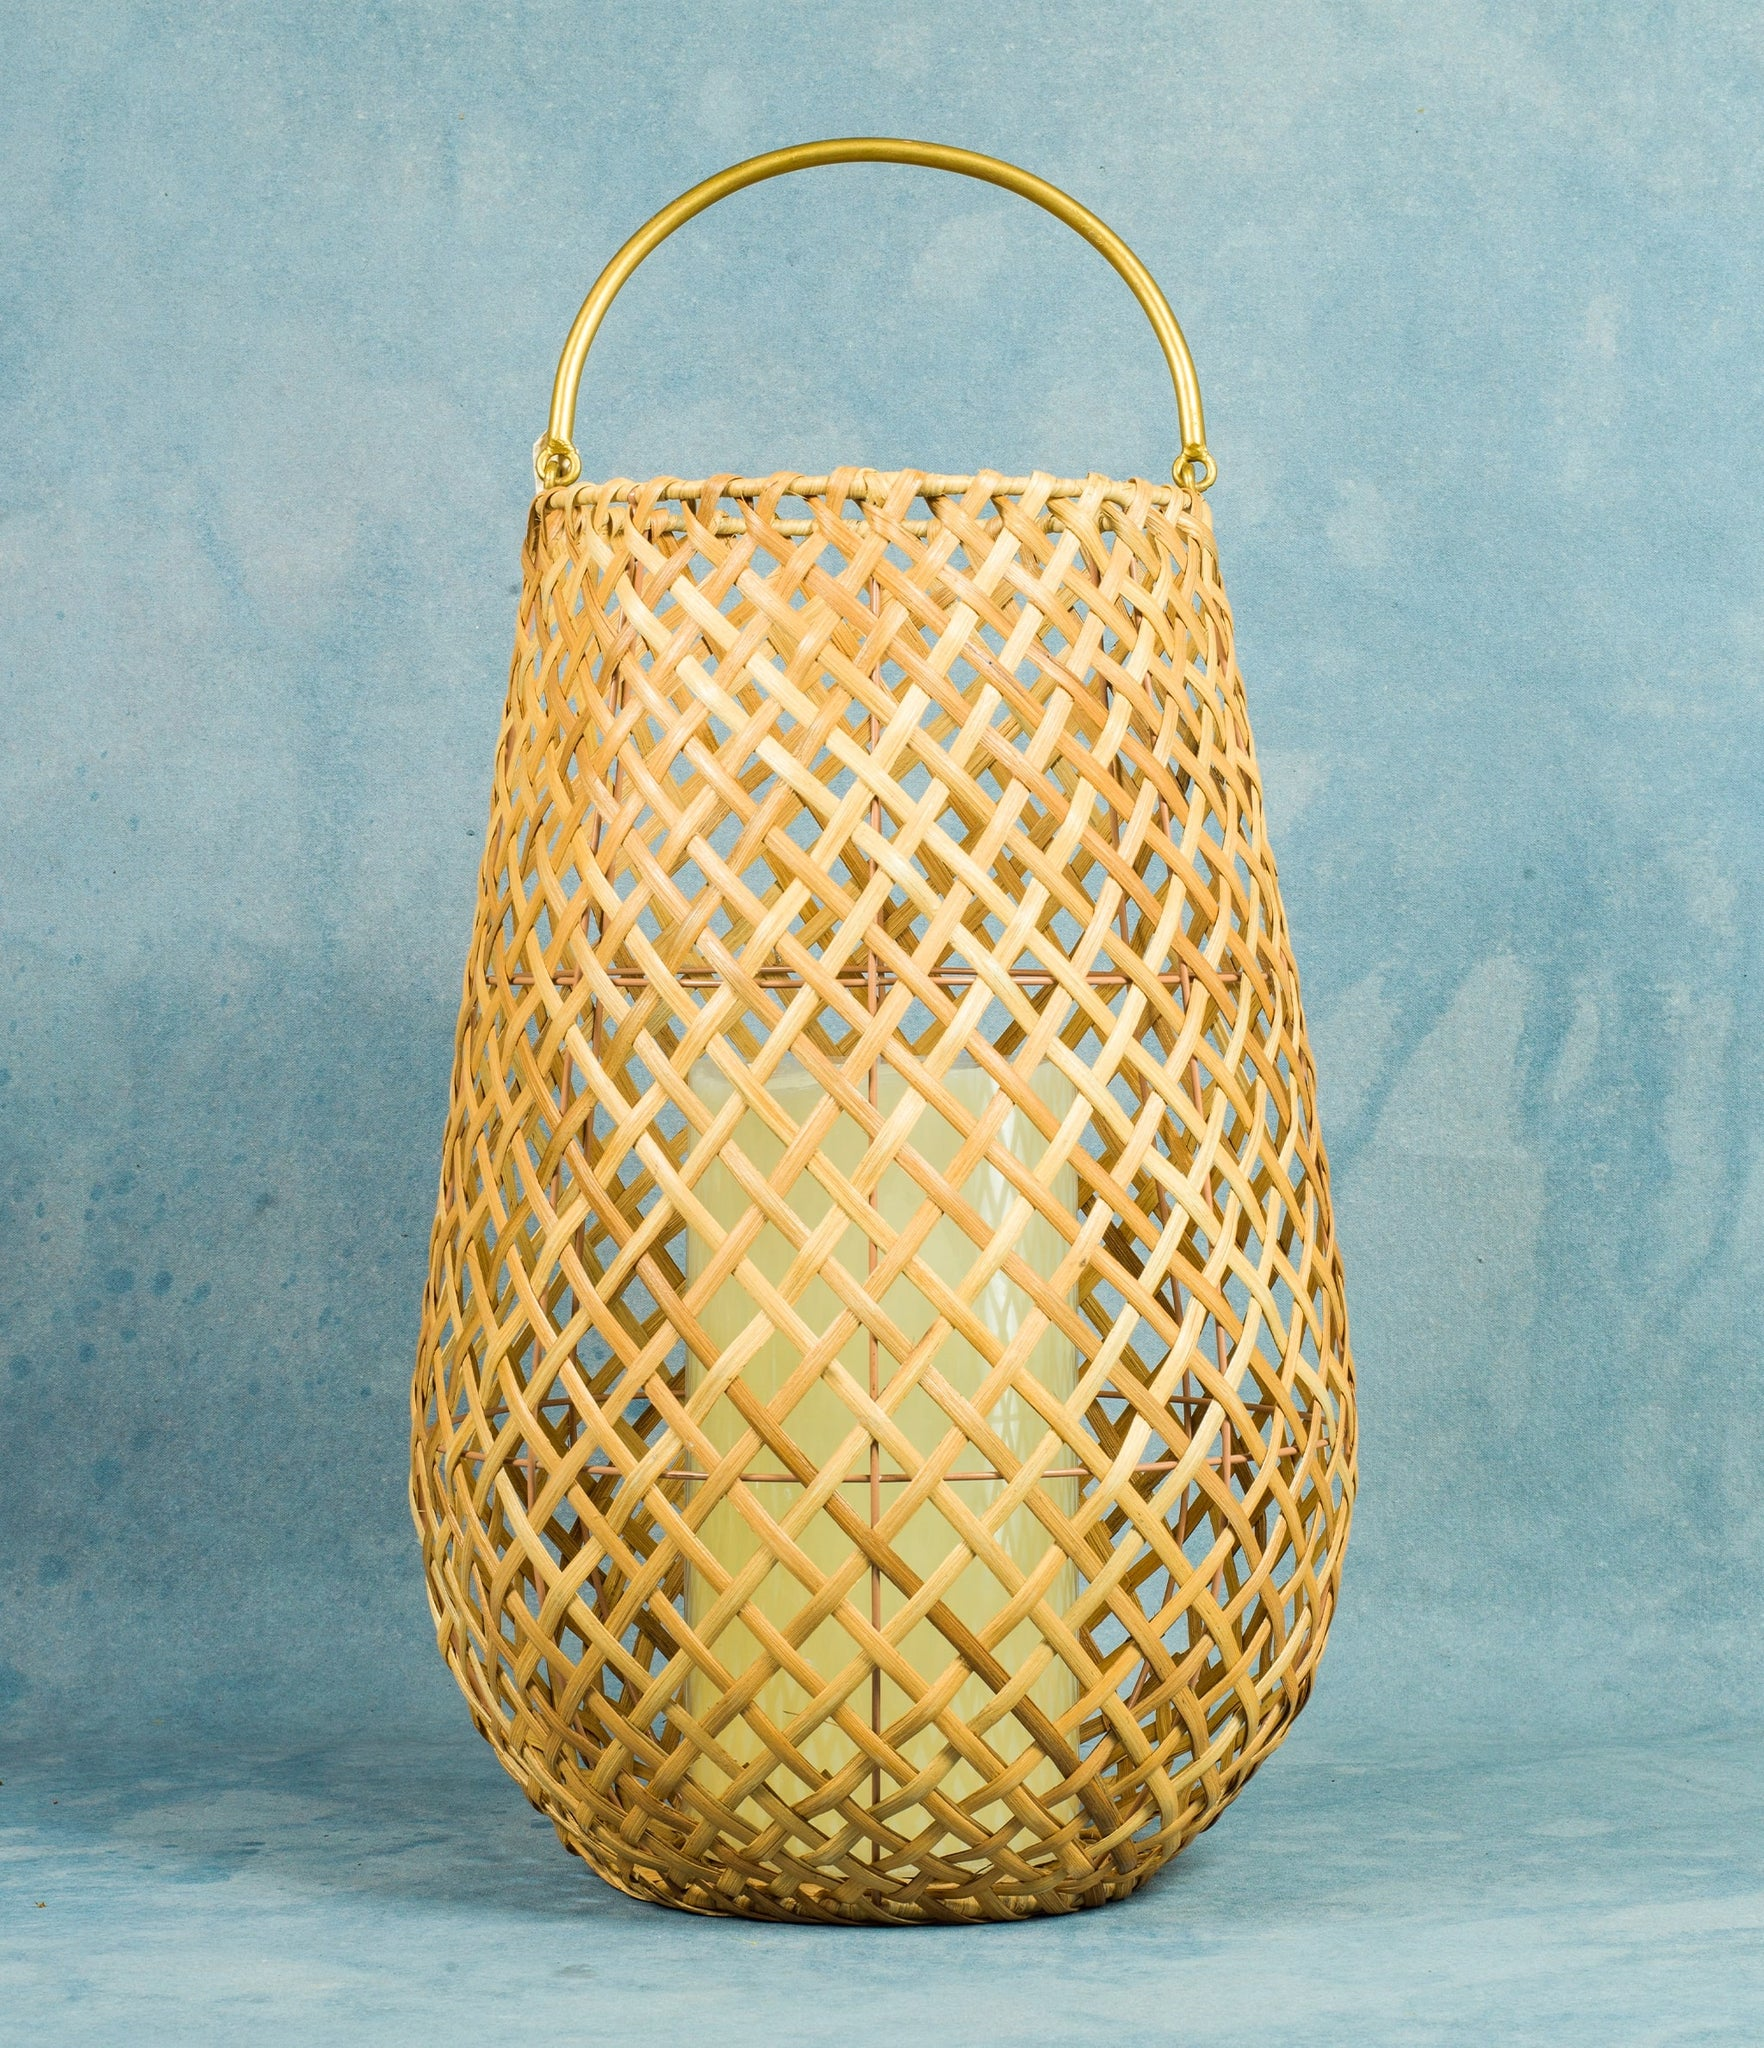 Wicker Lattice Hurricane Lantern - Large